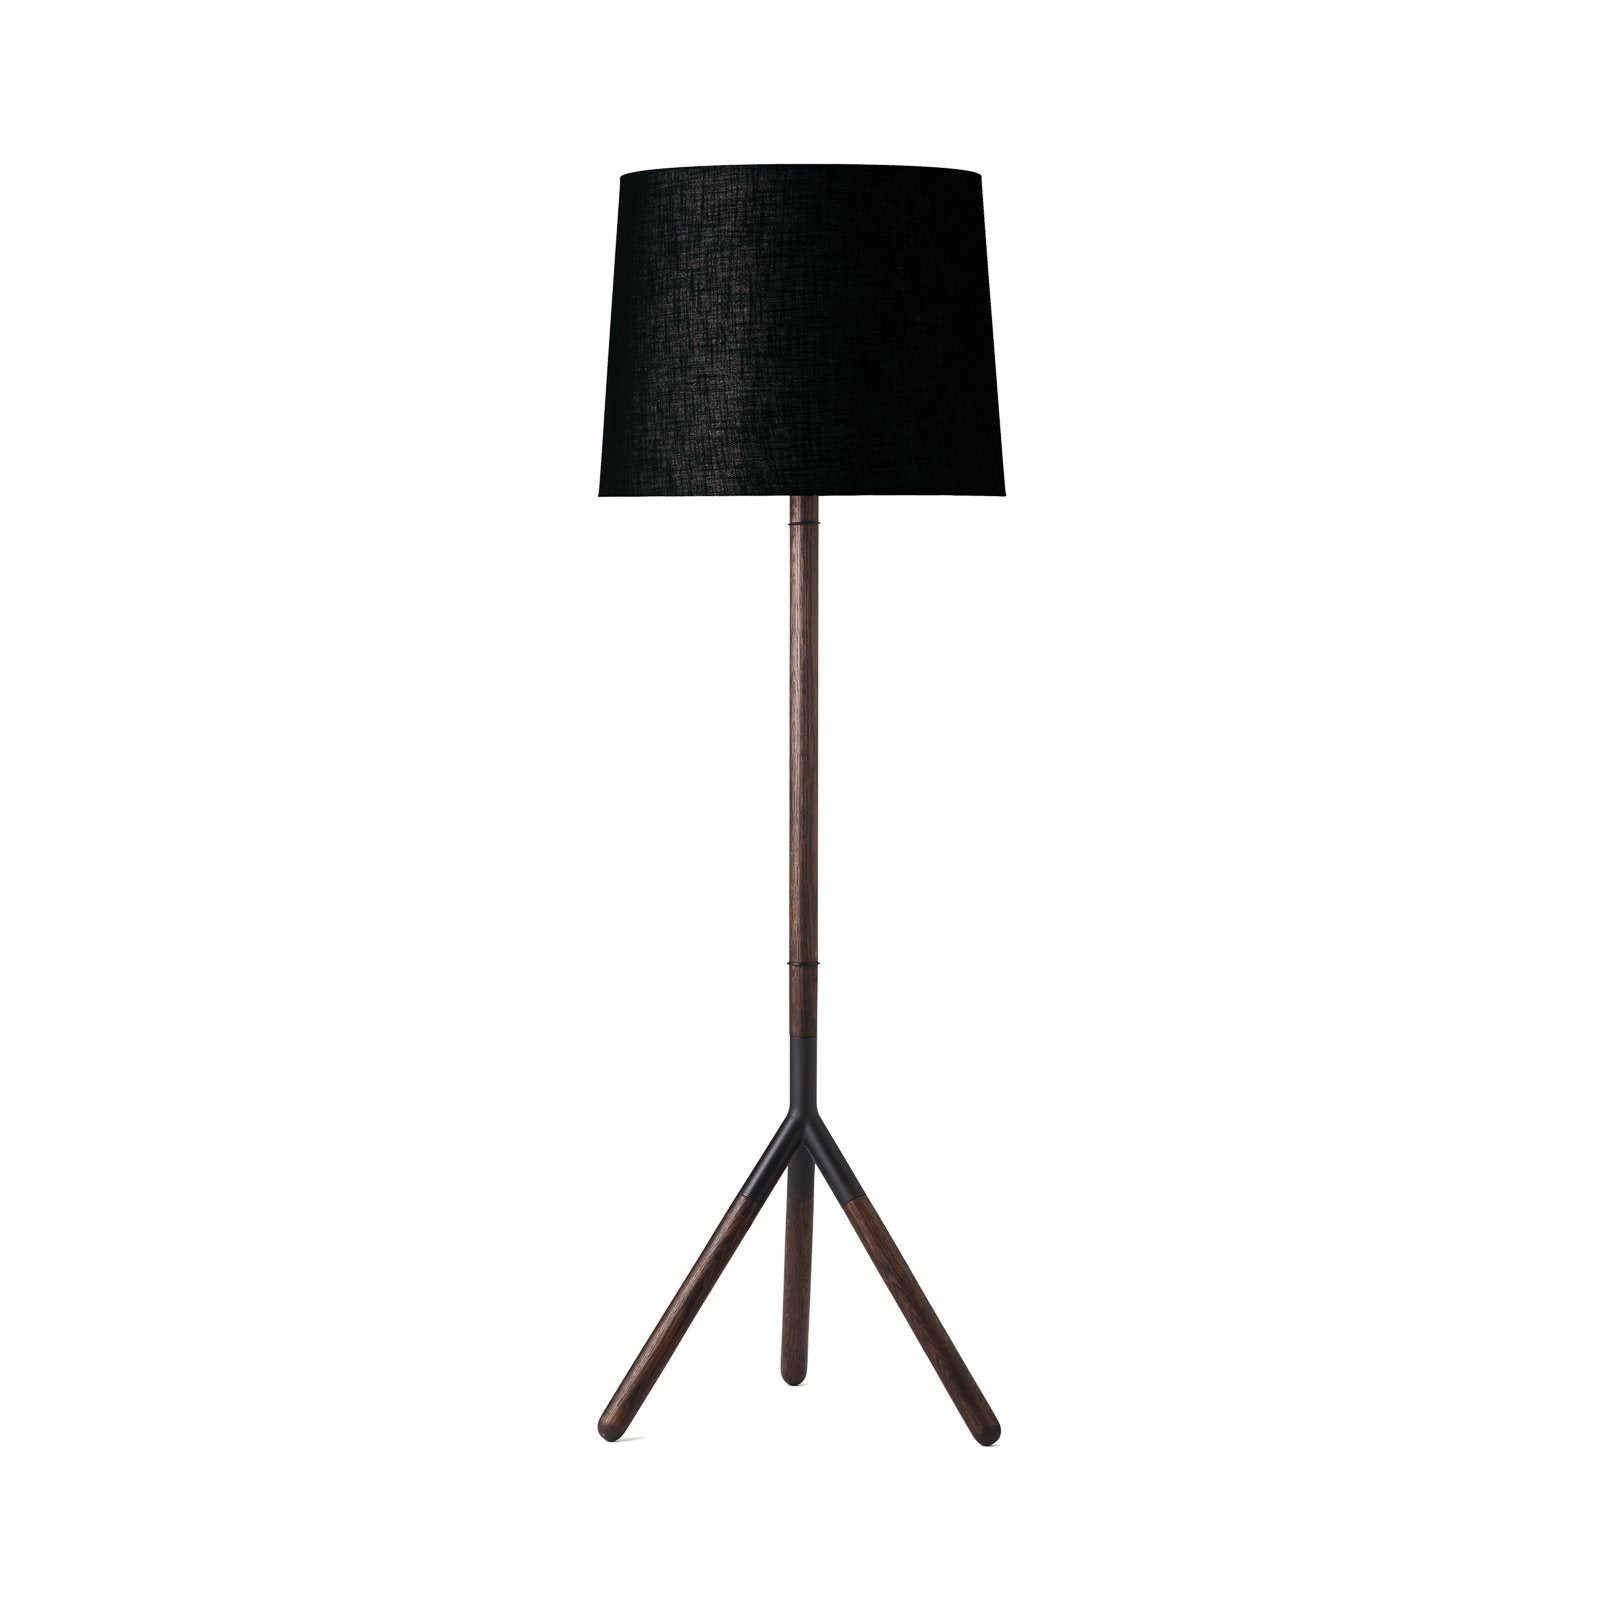 Lathe floor lamp in sirka gray lighting floor lamp lathe floor lamp in sirka gray aloadofball Gallery